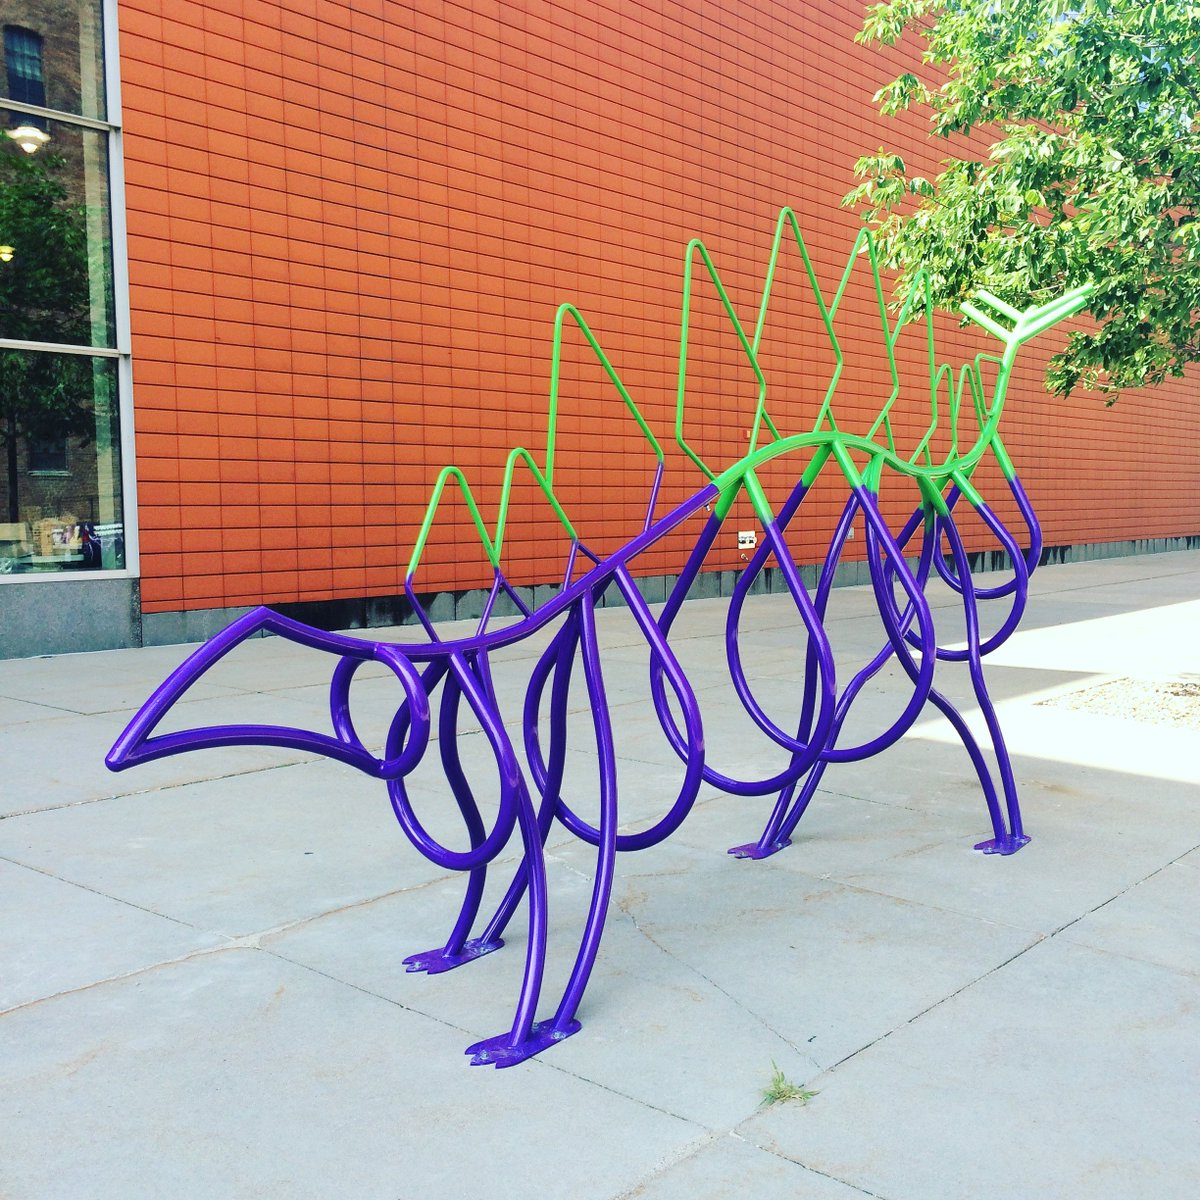 Our dinosaur bike rack is officially INSTALLED! Ride your bike to SCI! https://t.co/wawHm8pjEc